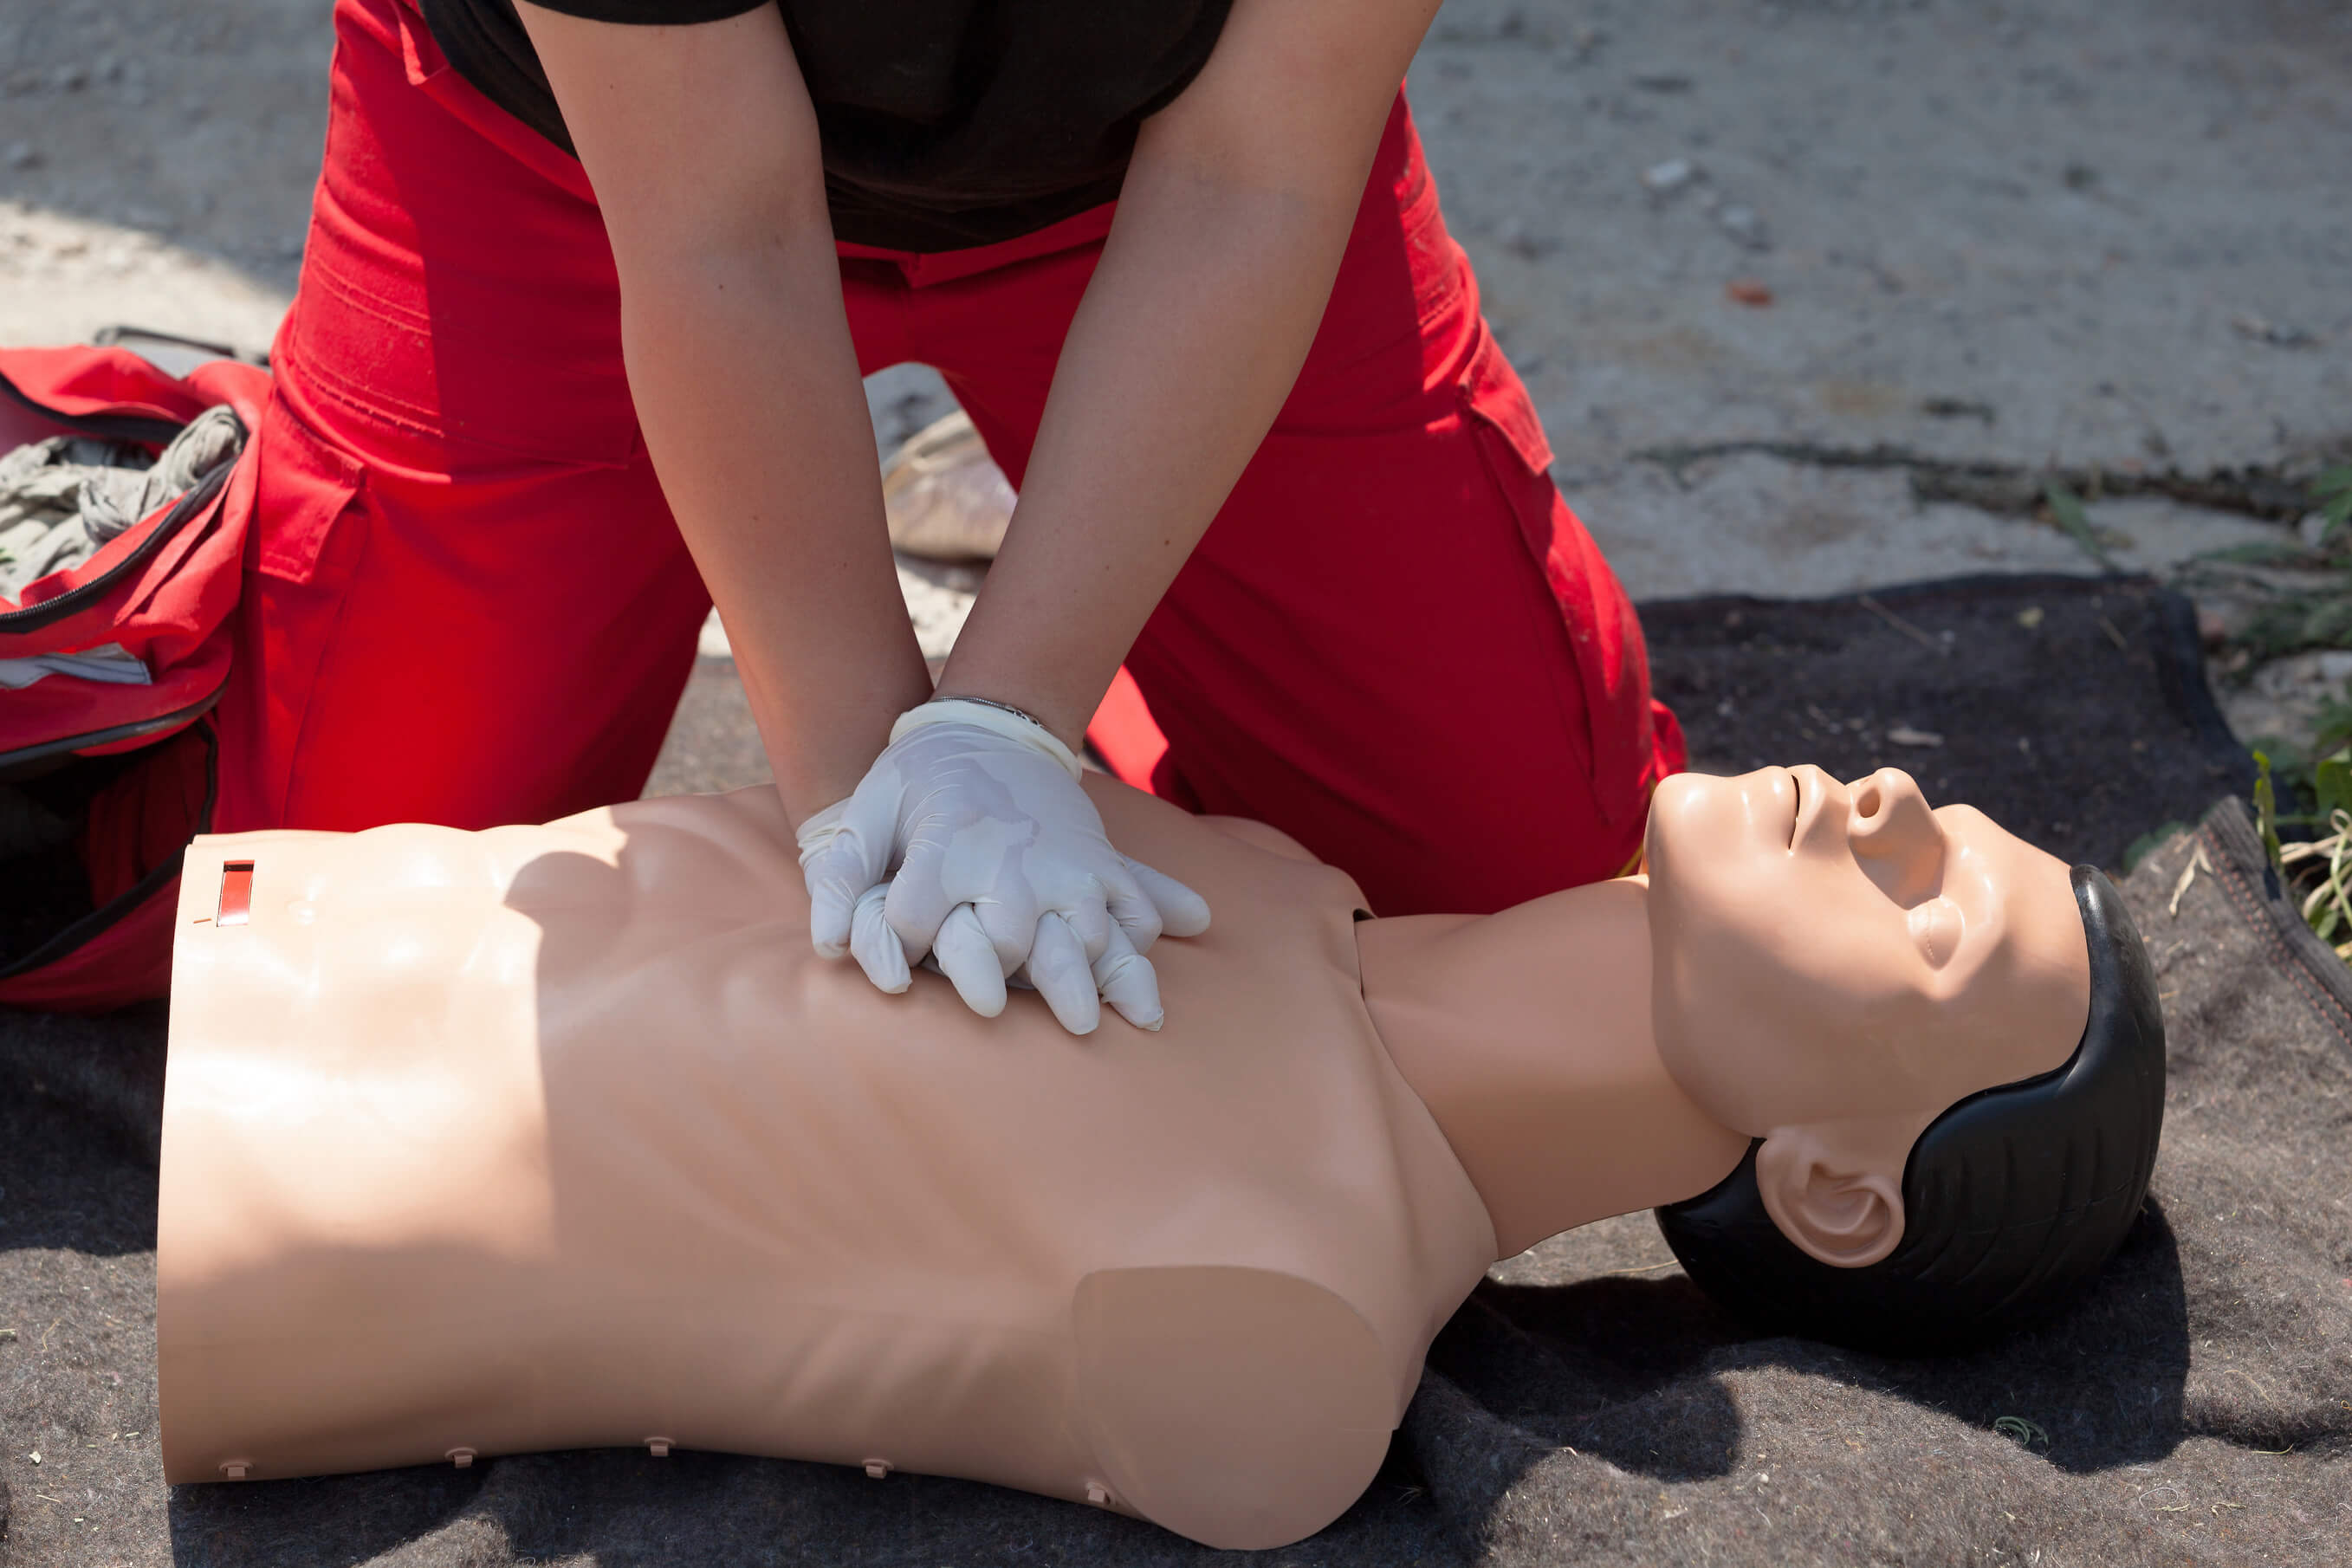 First aid training. CPR being performed on a medical-training manikin.